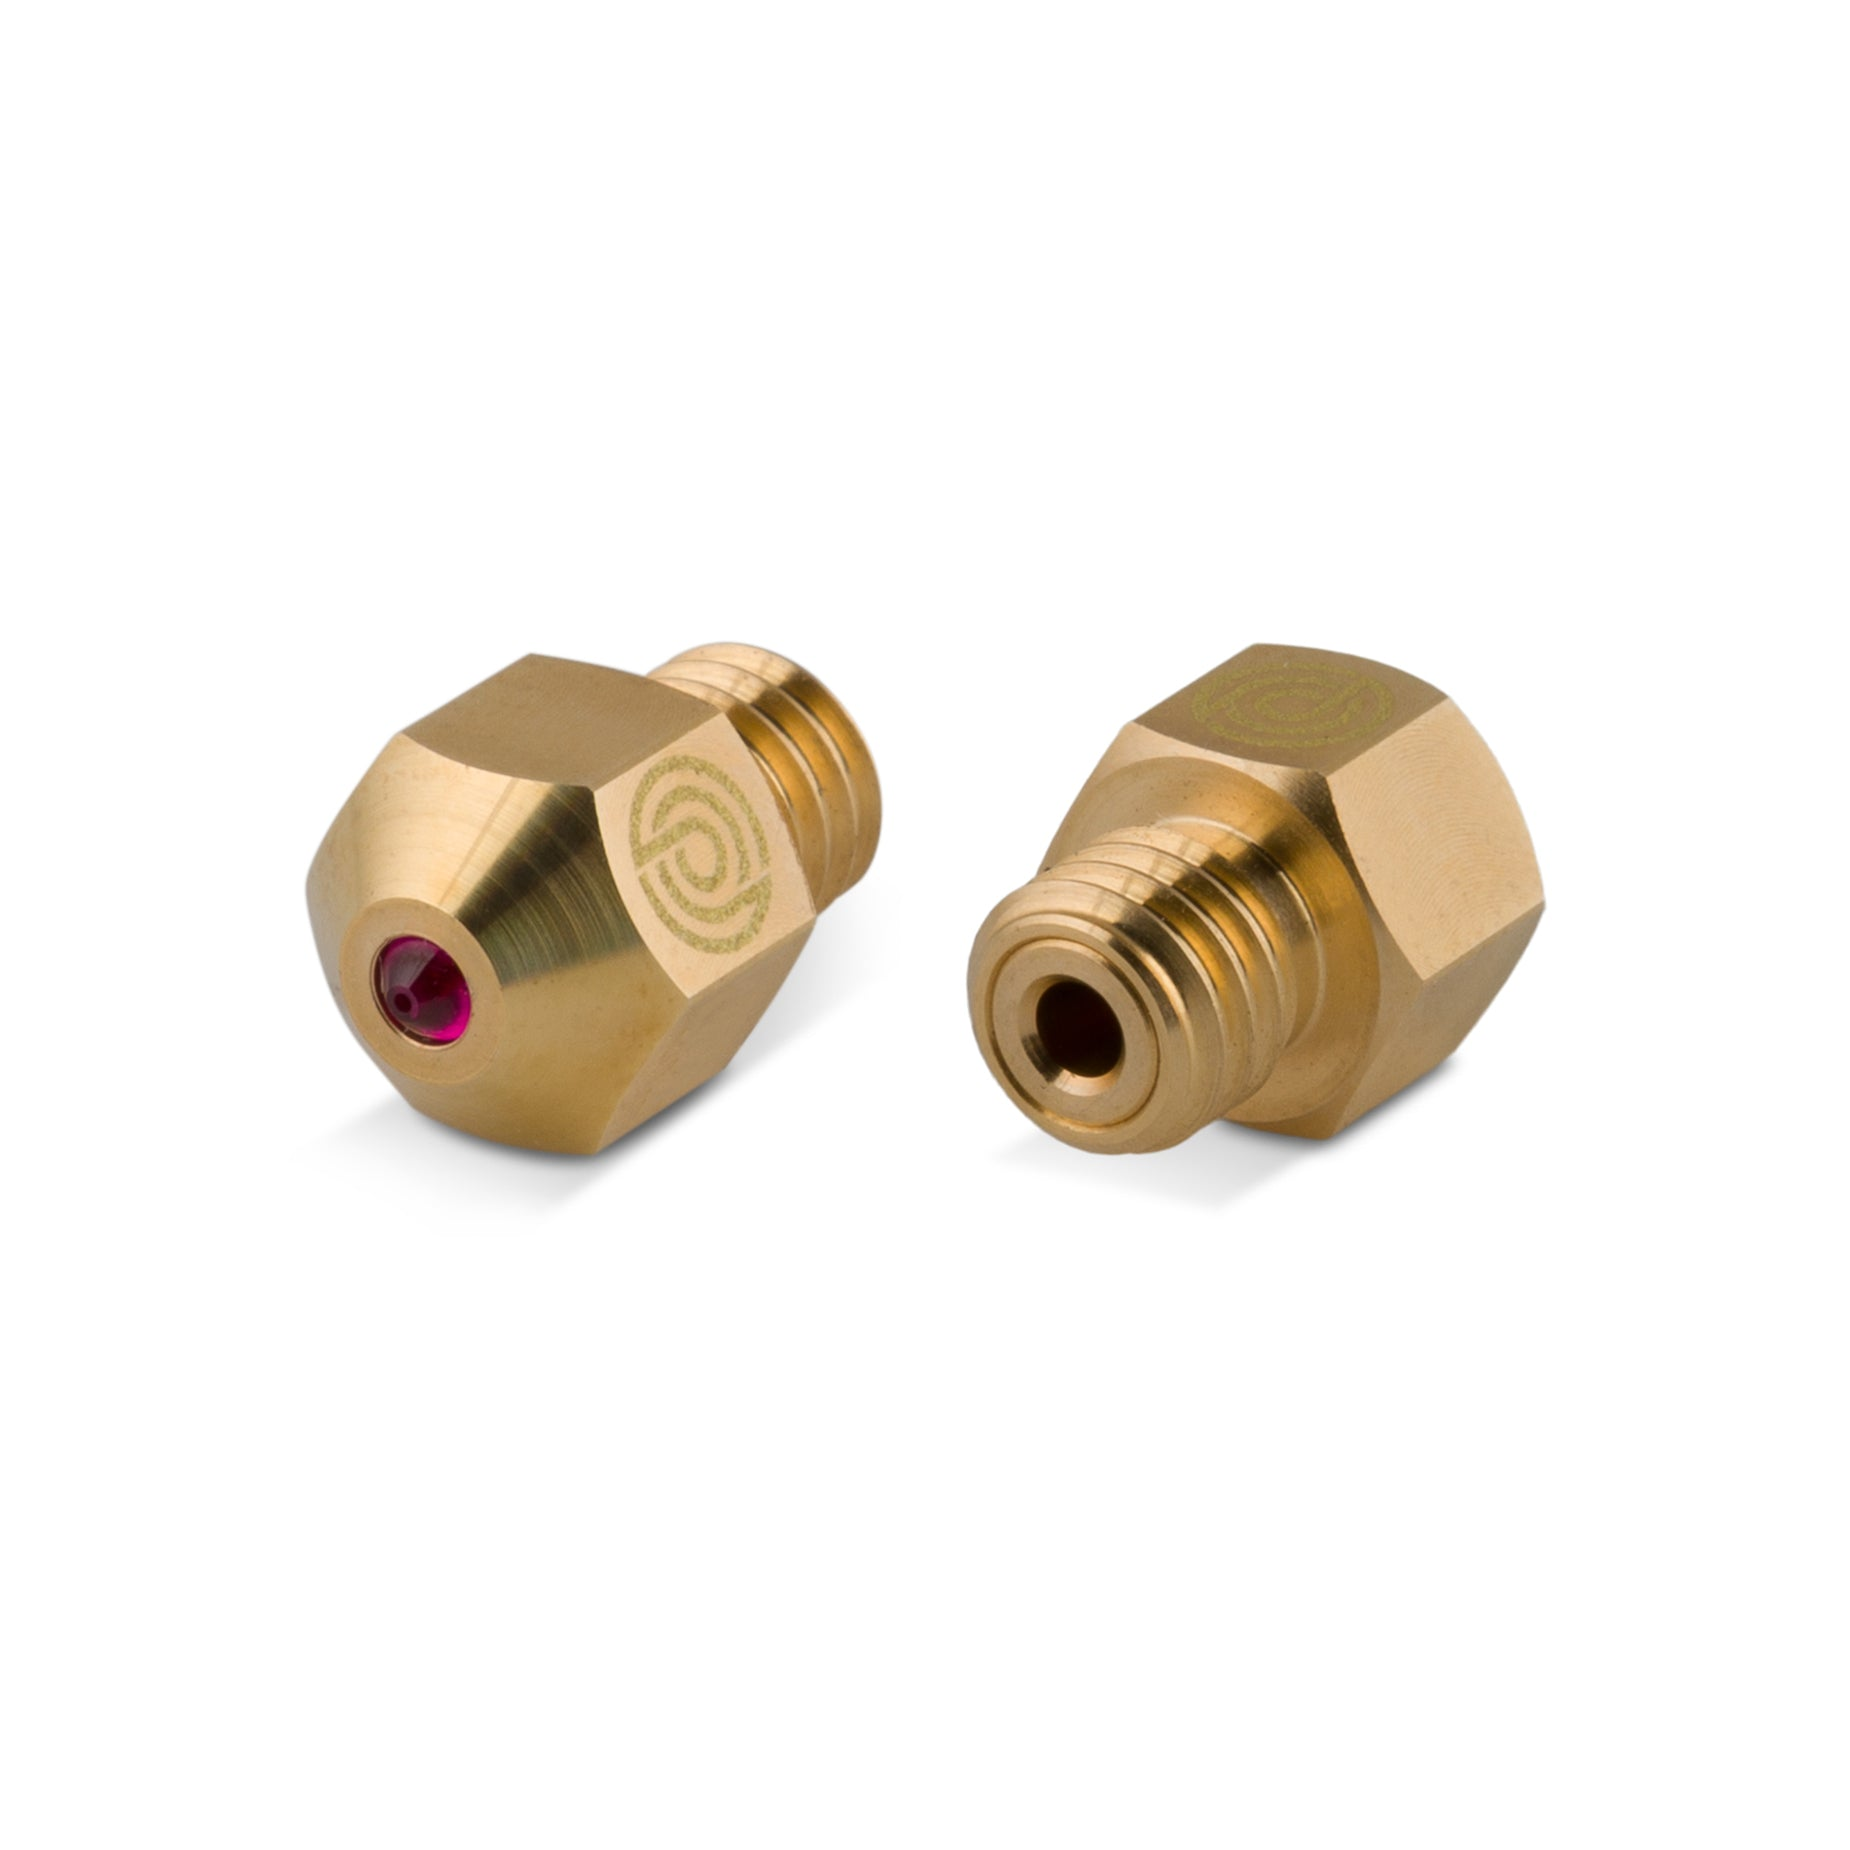 PrimaCreator MK8 Ruby Nozzle 0,6 mm - 1 pcs